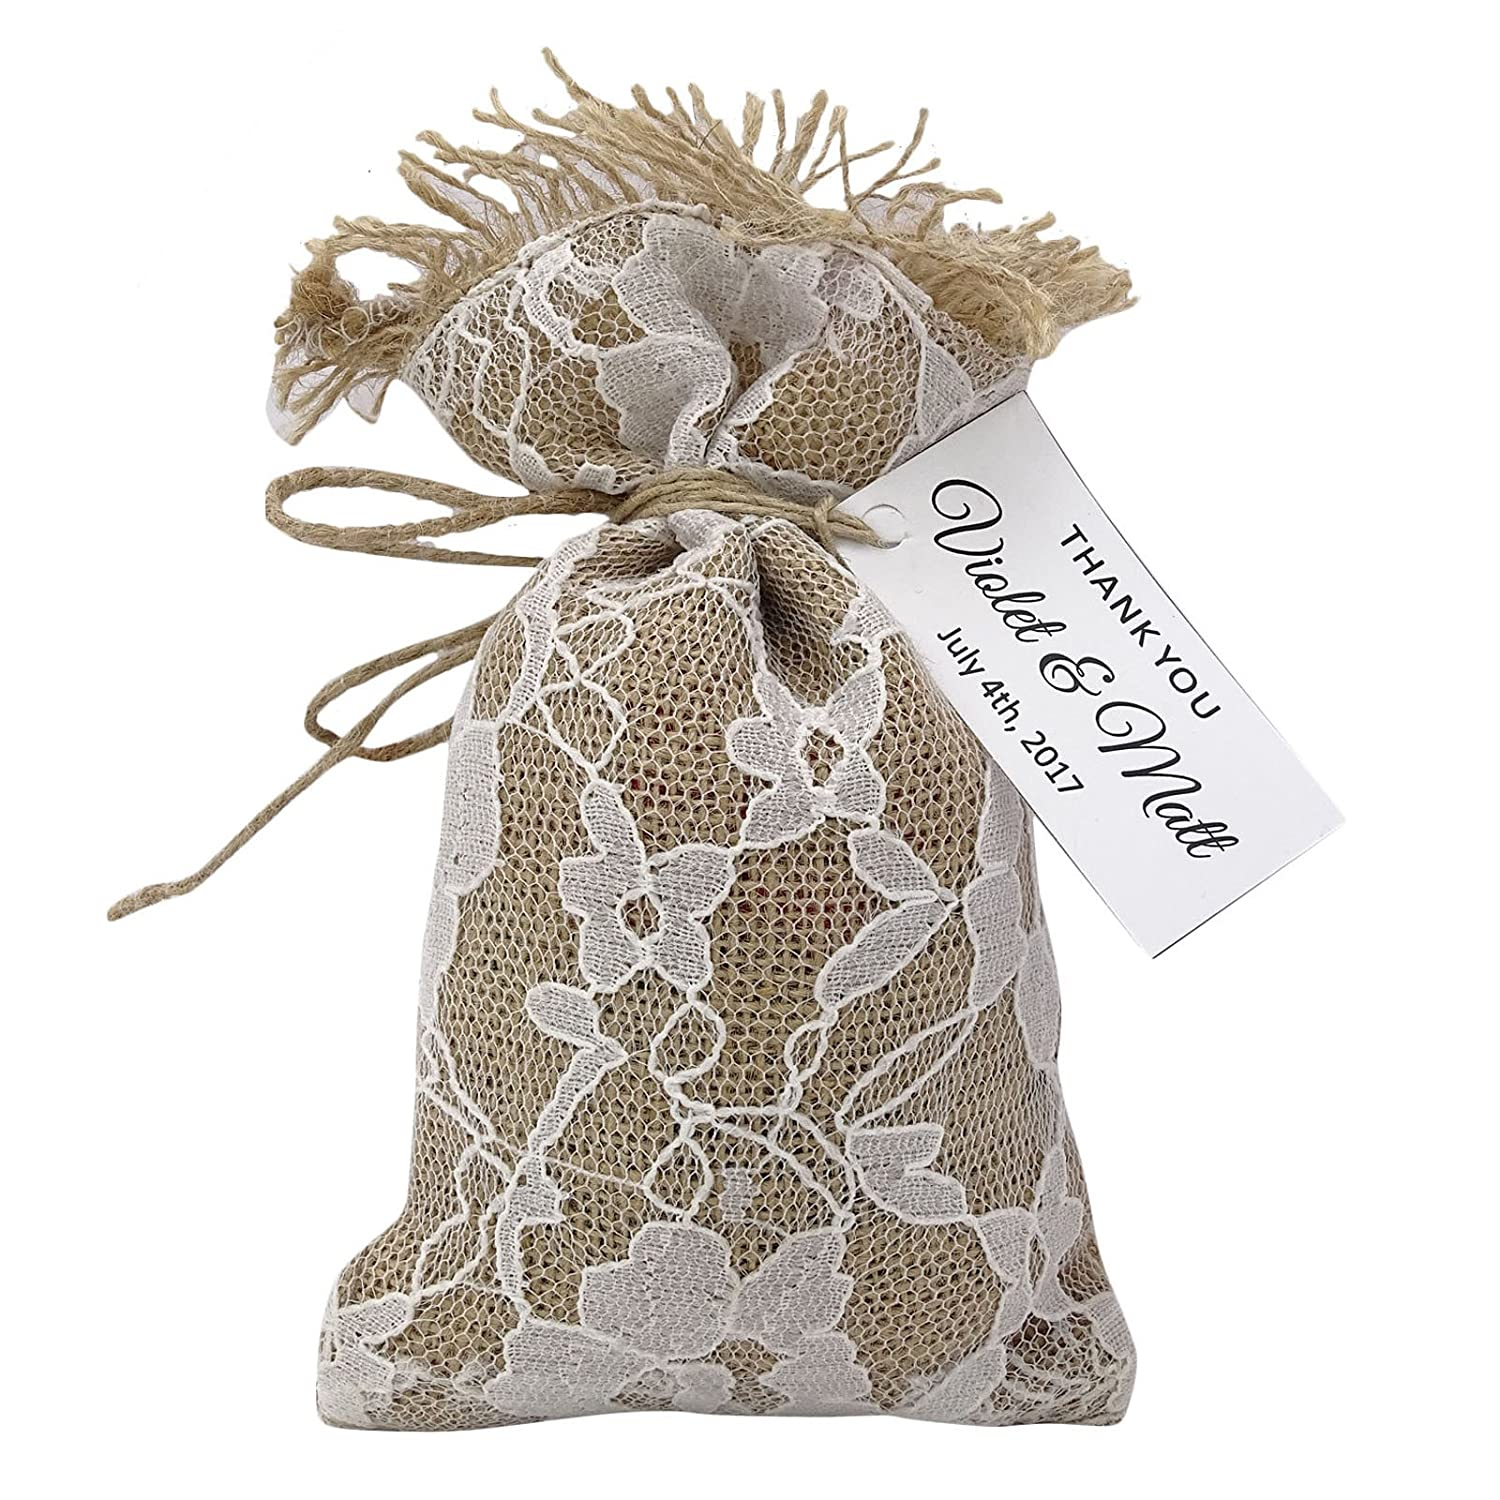 40 Bags 40 Burlap Drawstring Gift Bag Small Jute Pouch Wedding Party Rustic Favor Bags With Personalized Paper Tags 4  x 6.5